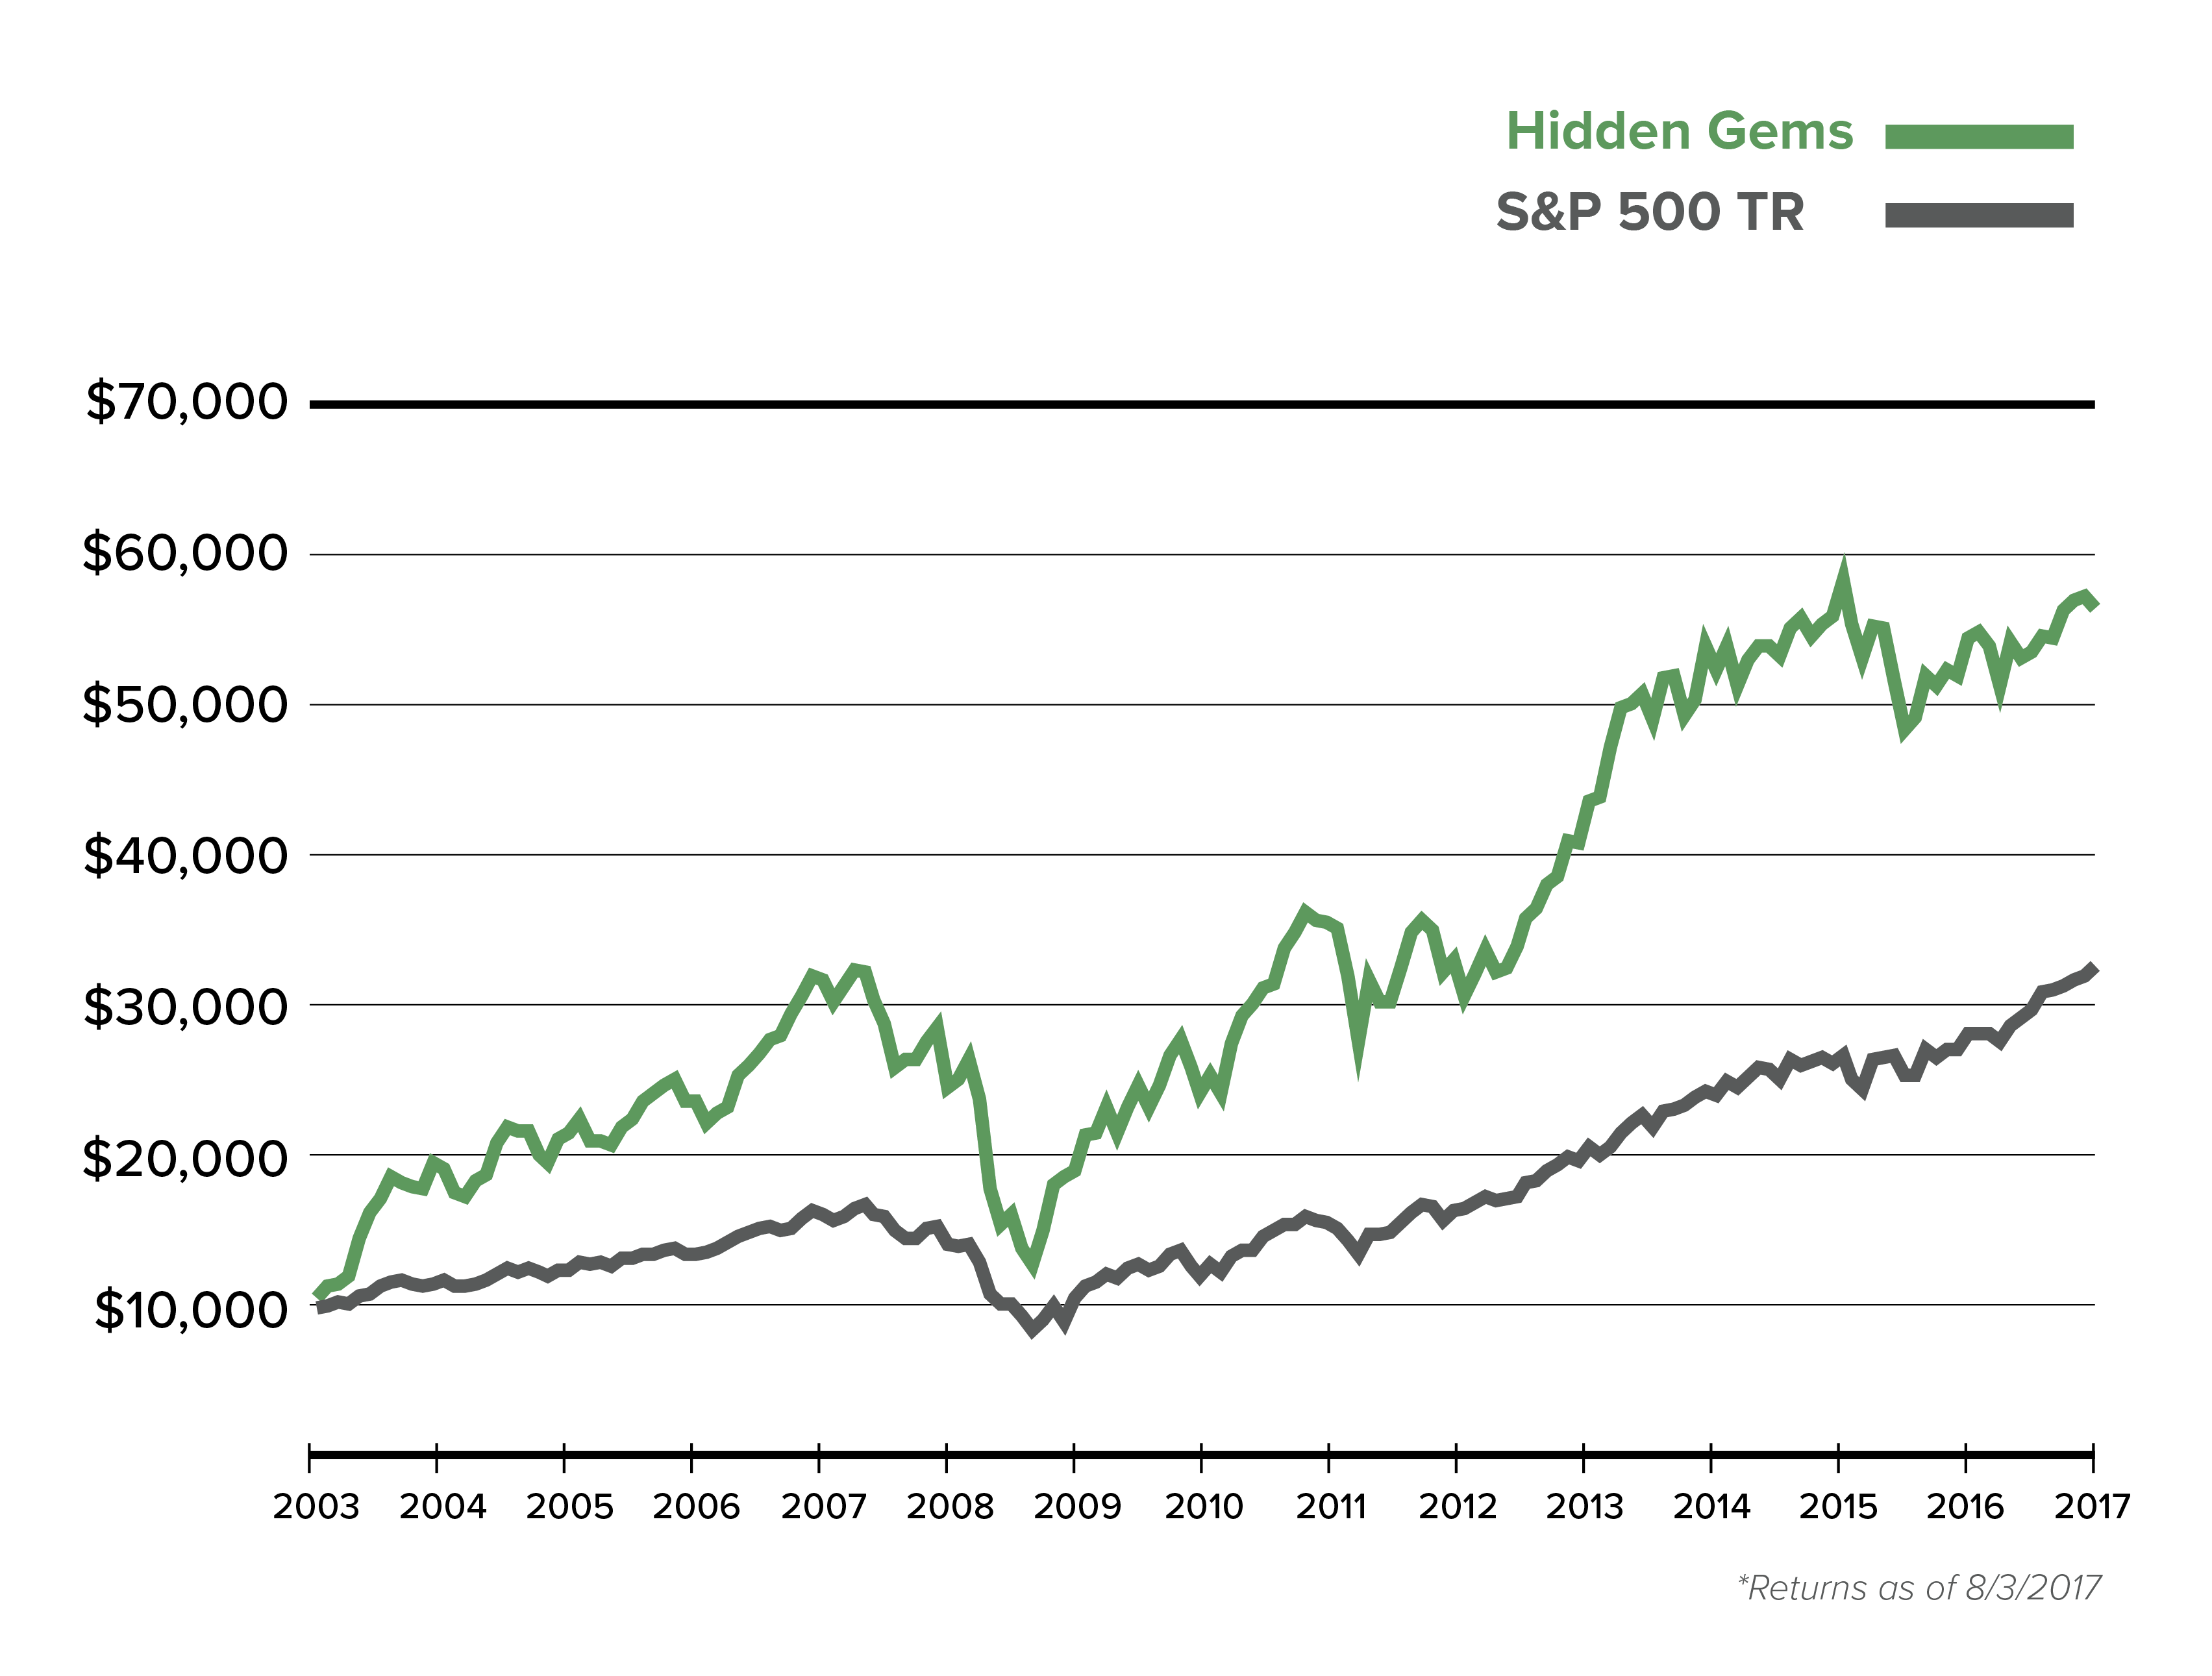 Cumulative Growth of a $10,000 Investment in Hidden Gems